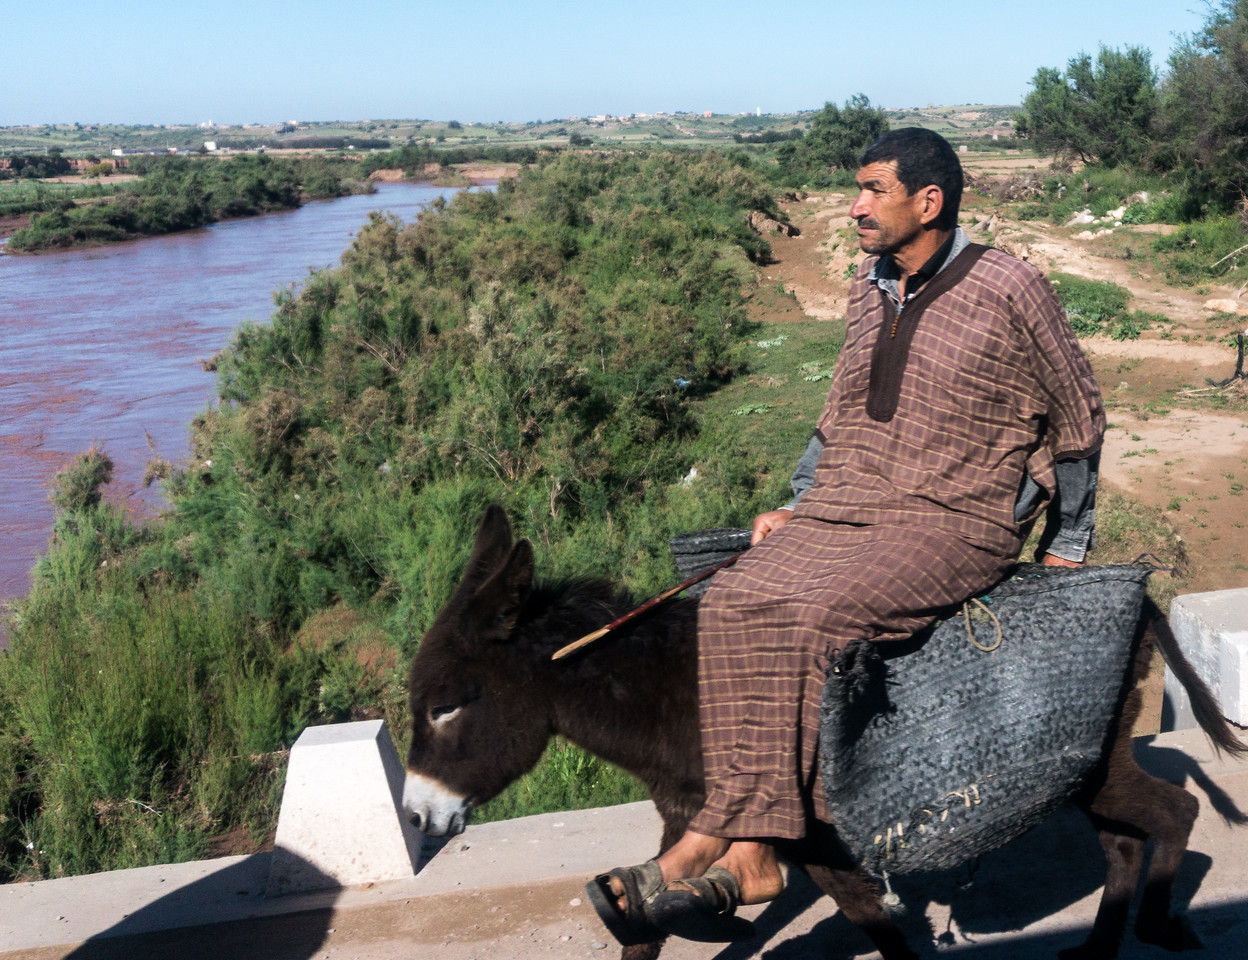 Another example of the variety of transport that we saw on the road from Essaouira to Casablanca